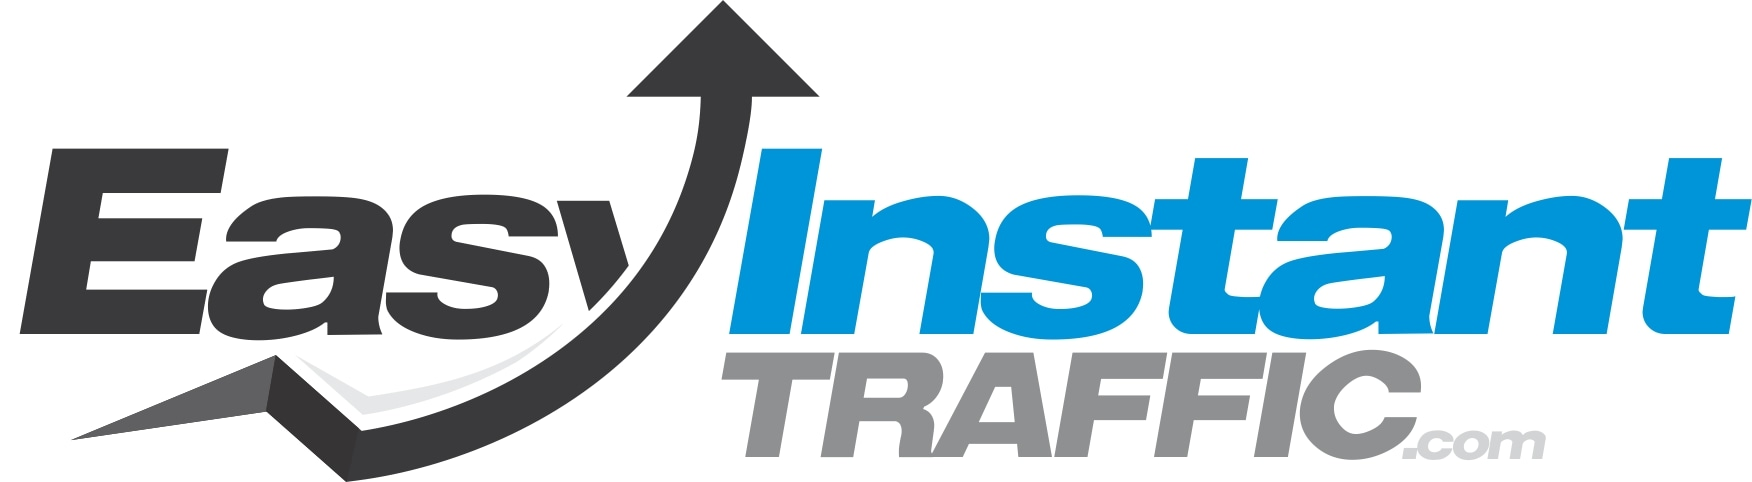 Easy Instant Traffic promo codes